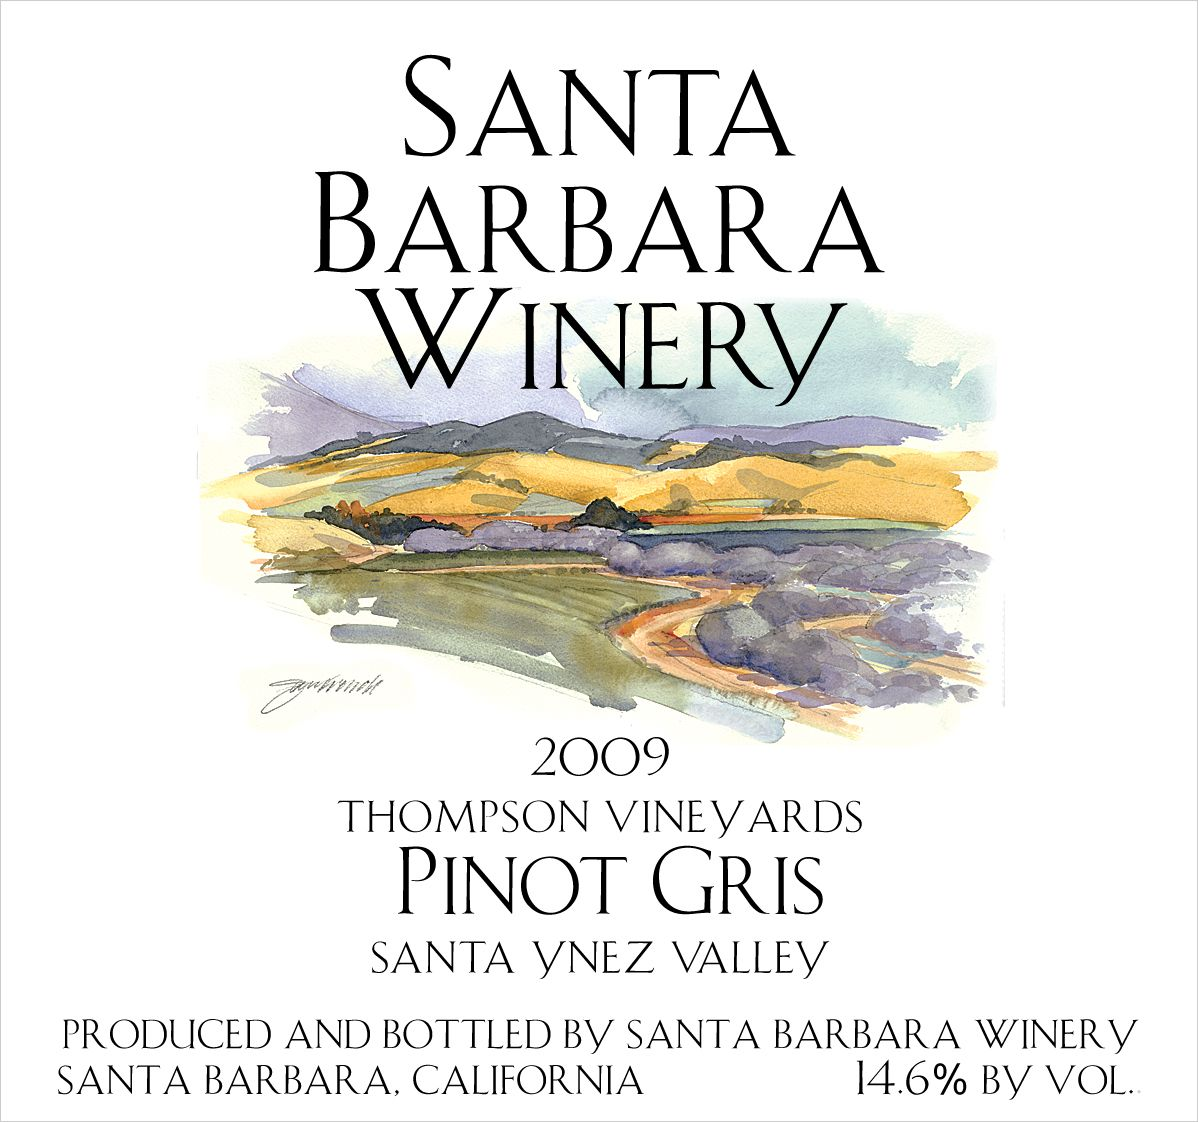 santa barbara wineries - Google Search